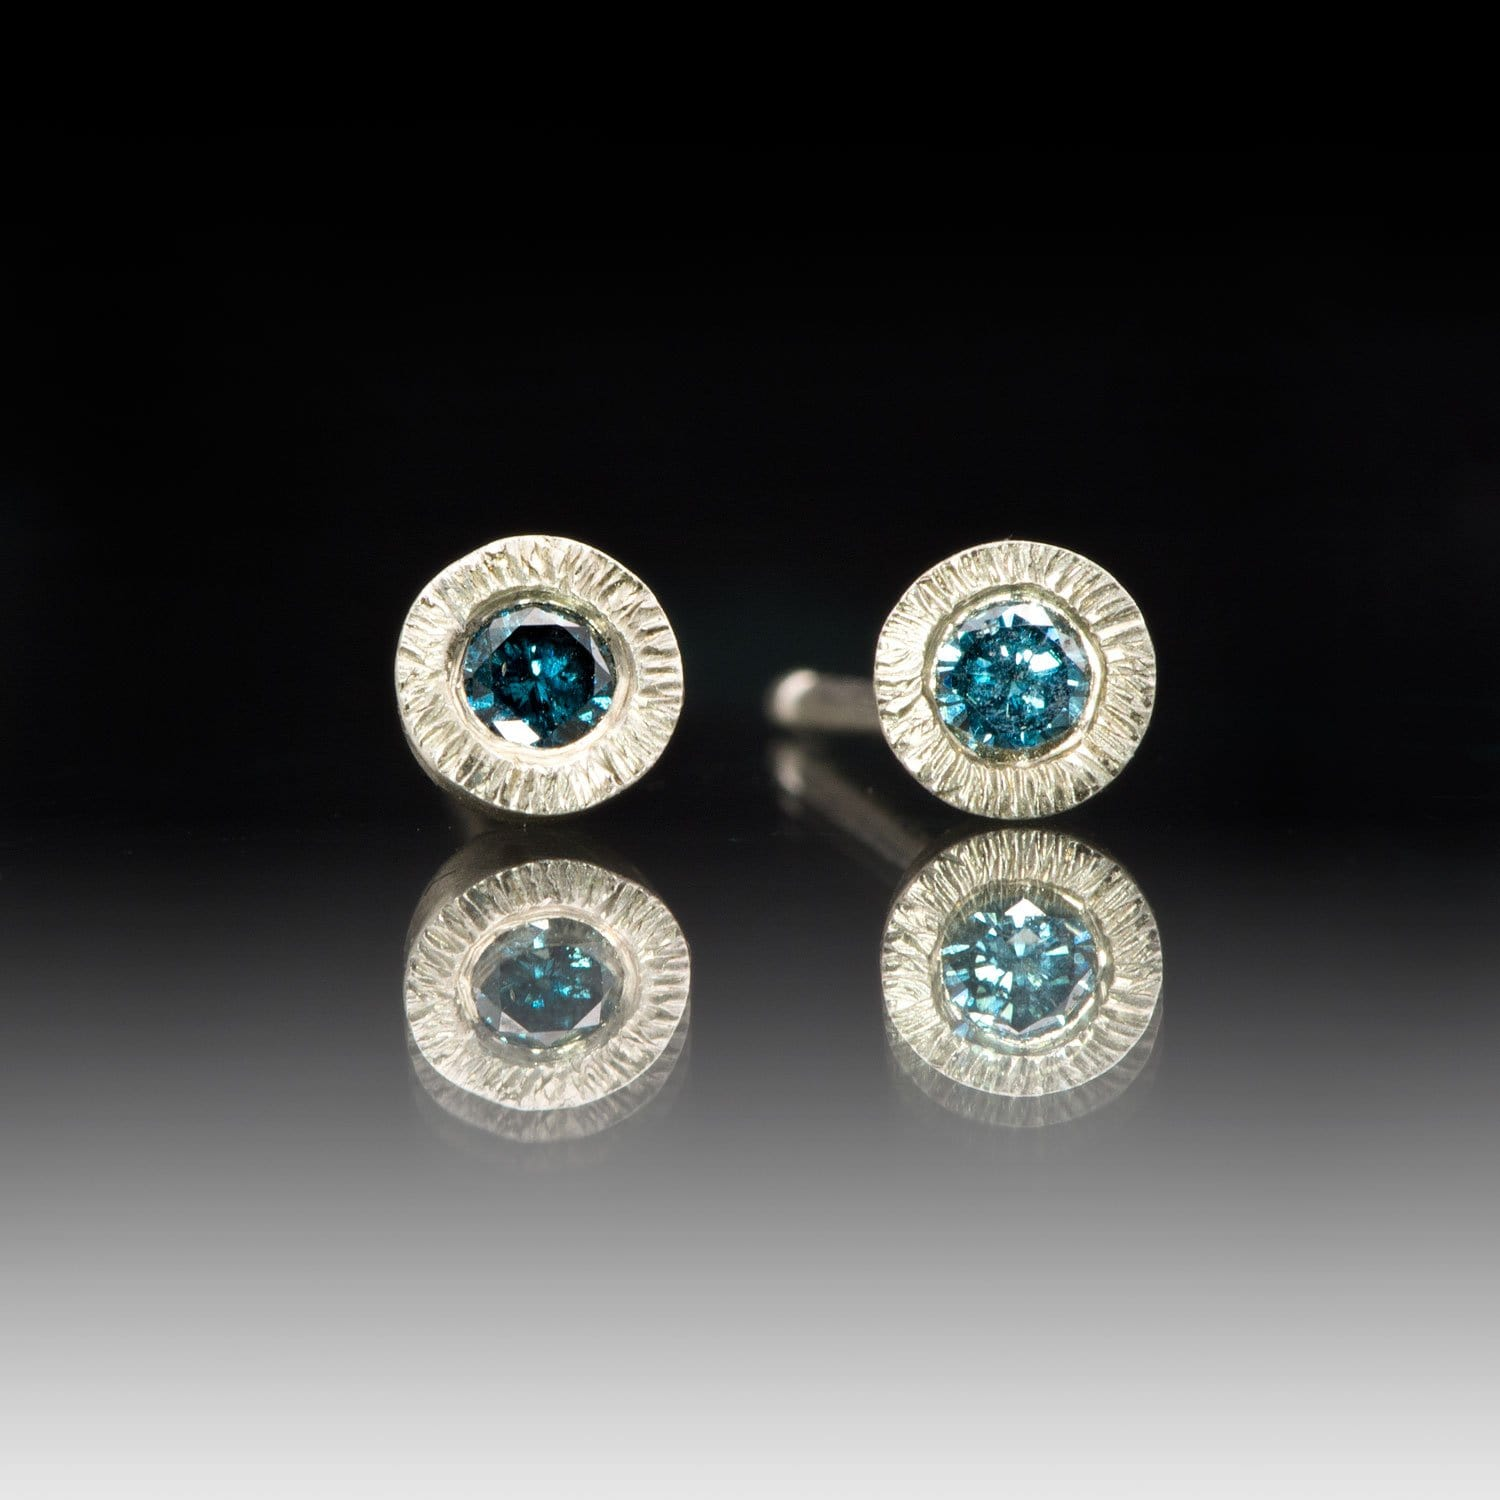 Teal Blue Diamond Tiny Textured Sterling Silver Stud Earrings, Ready to Ship